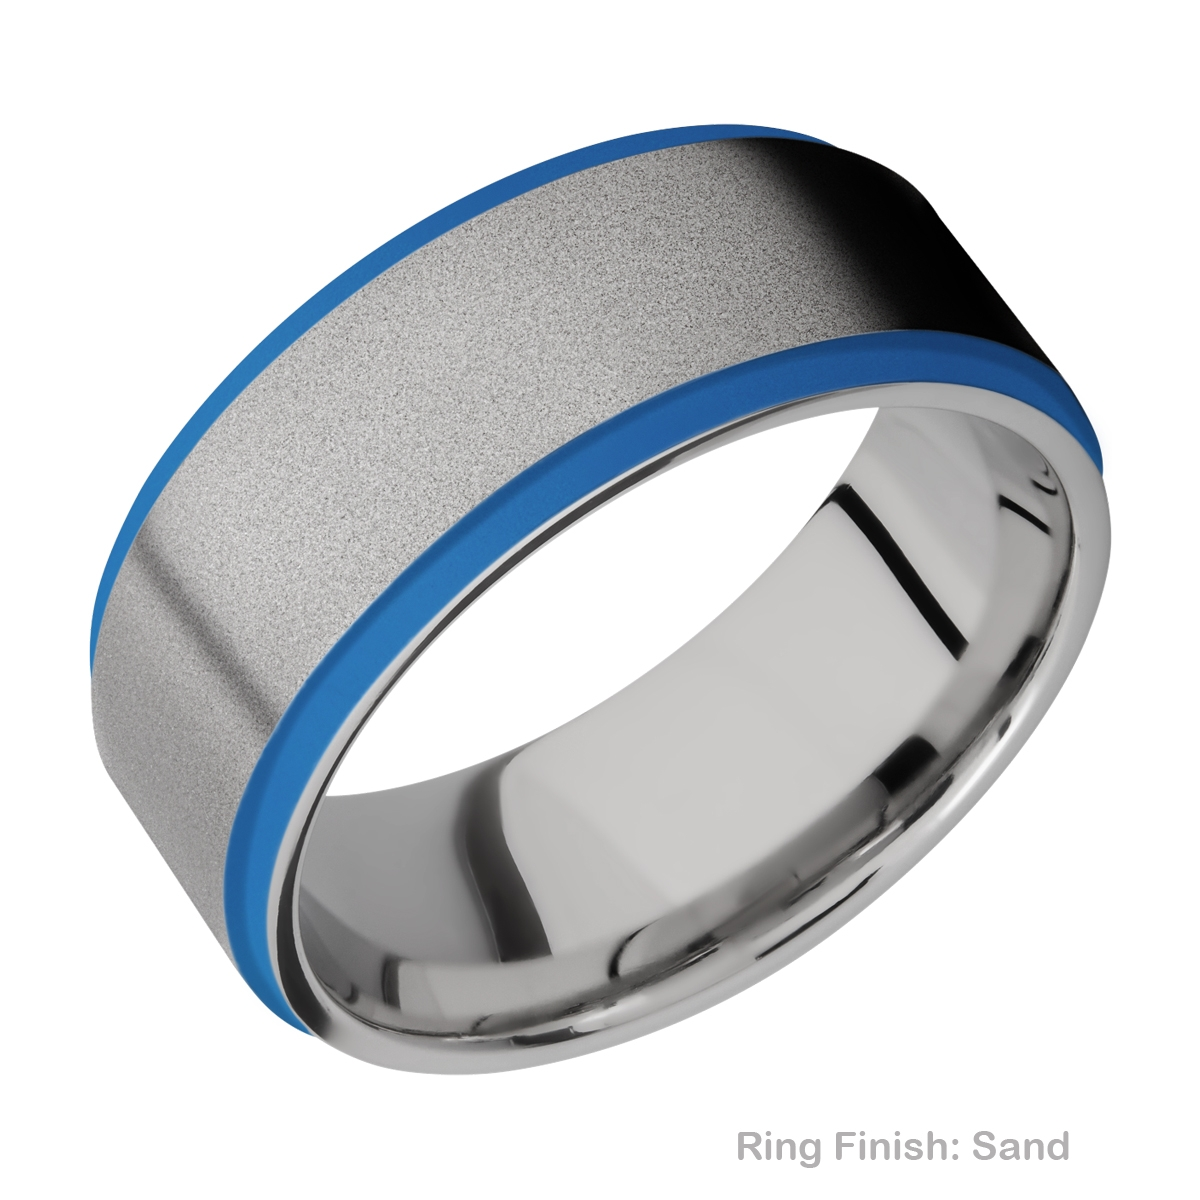 Lashbrook CC10FGE21EDGE/A/CERAKOTE Cobalt Chrome Wedding Ring or Band Alternative View 5